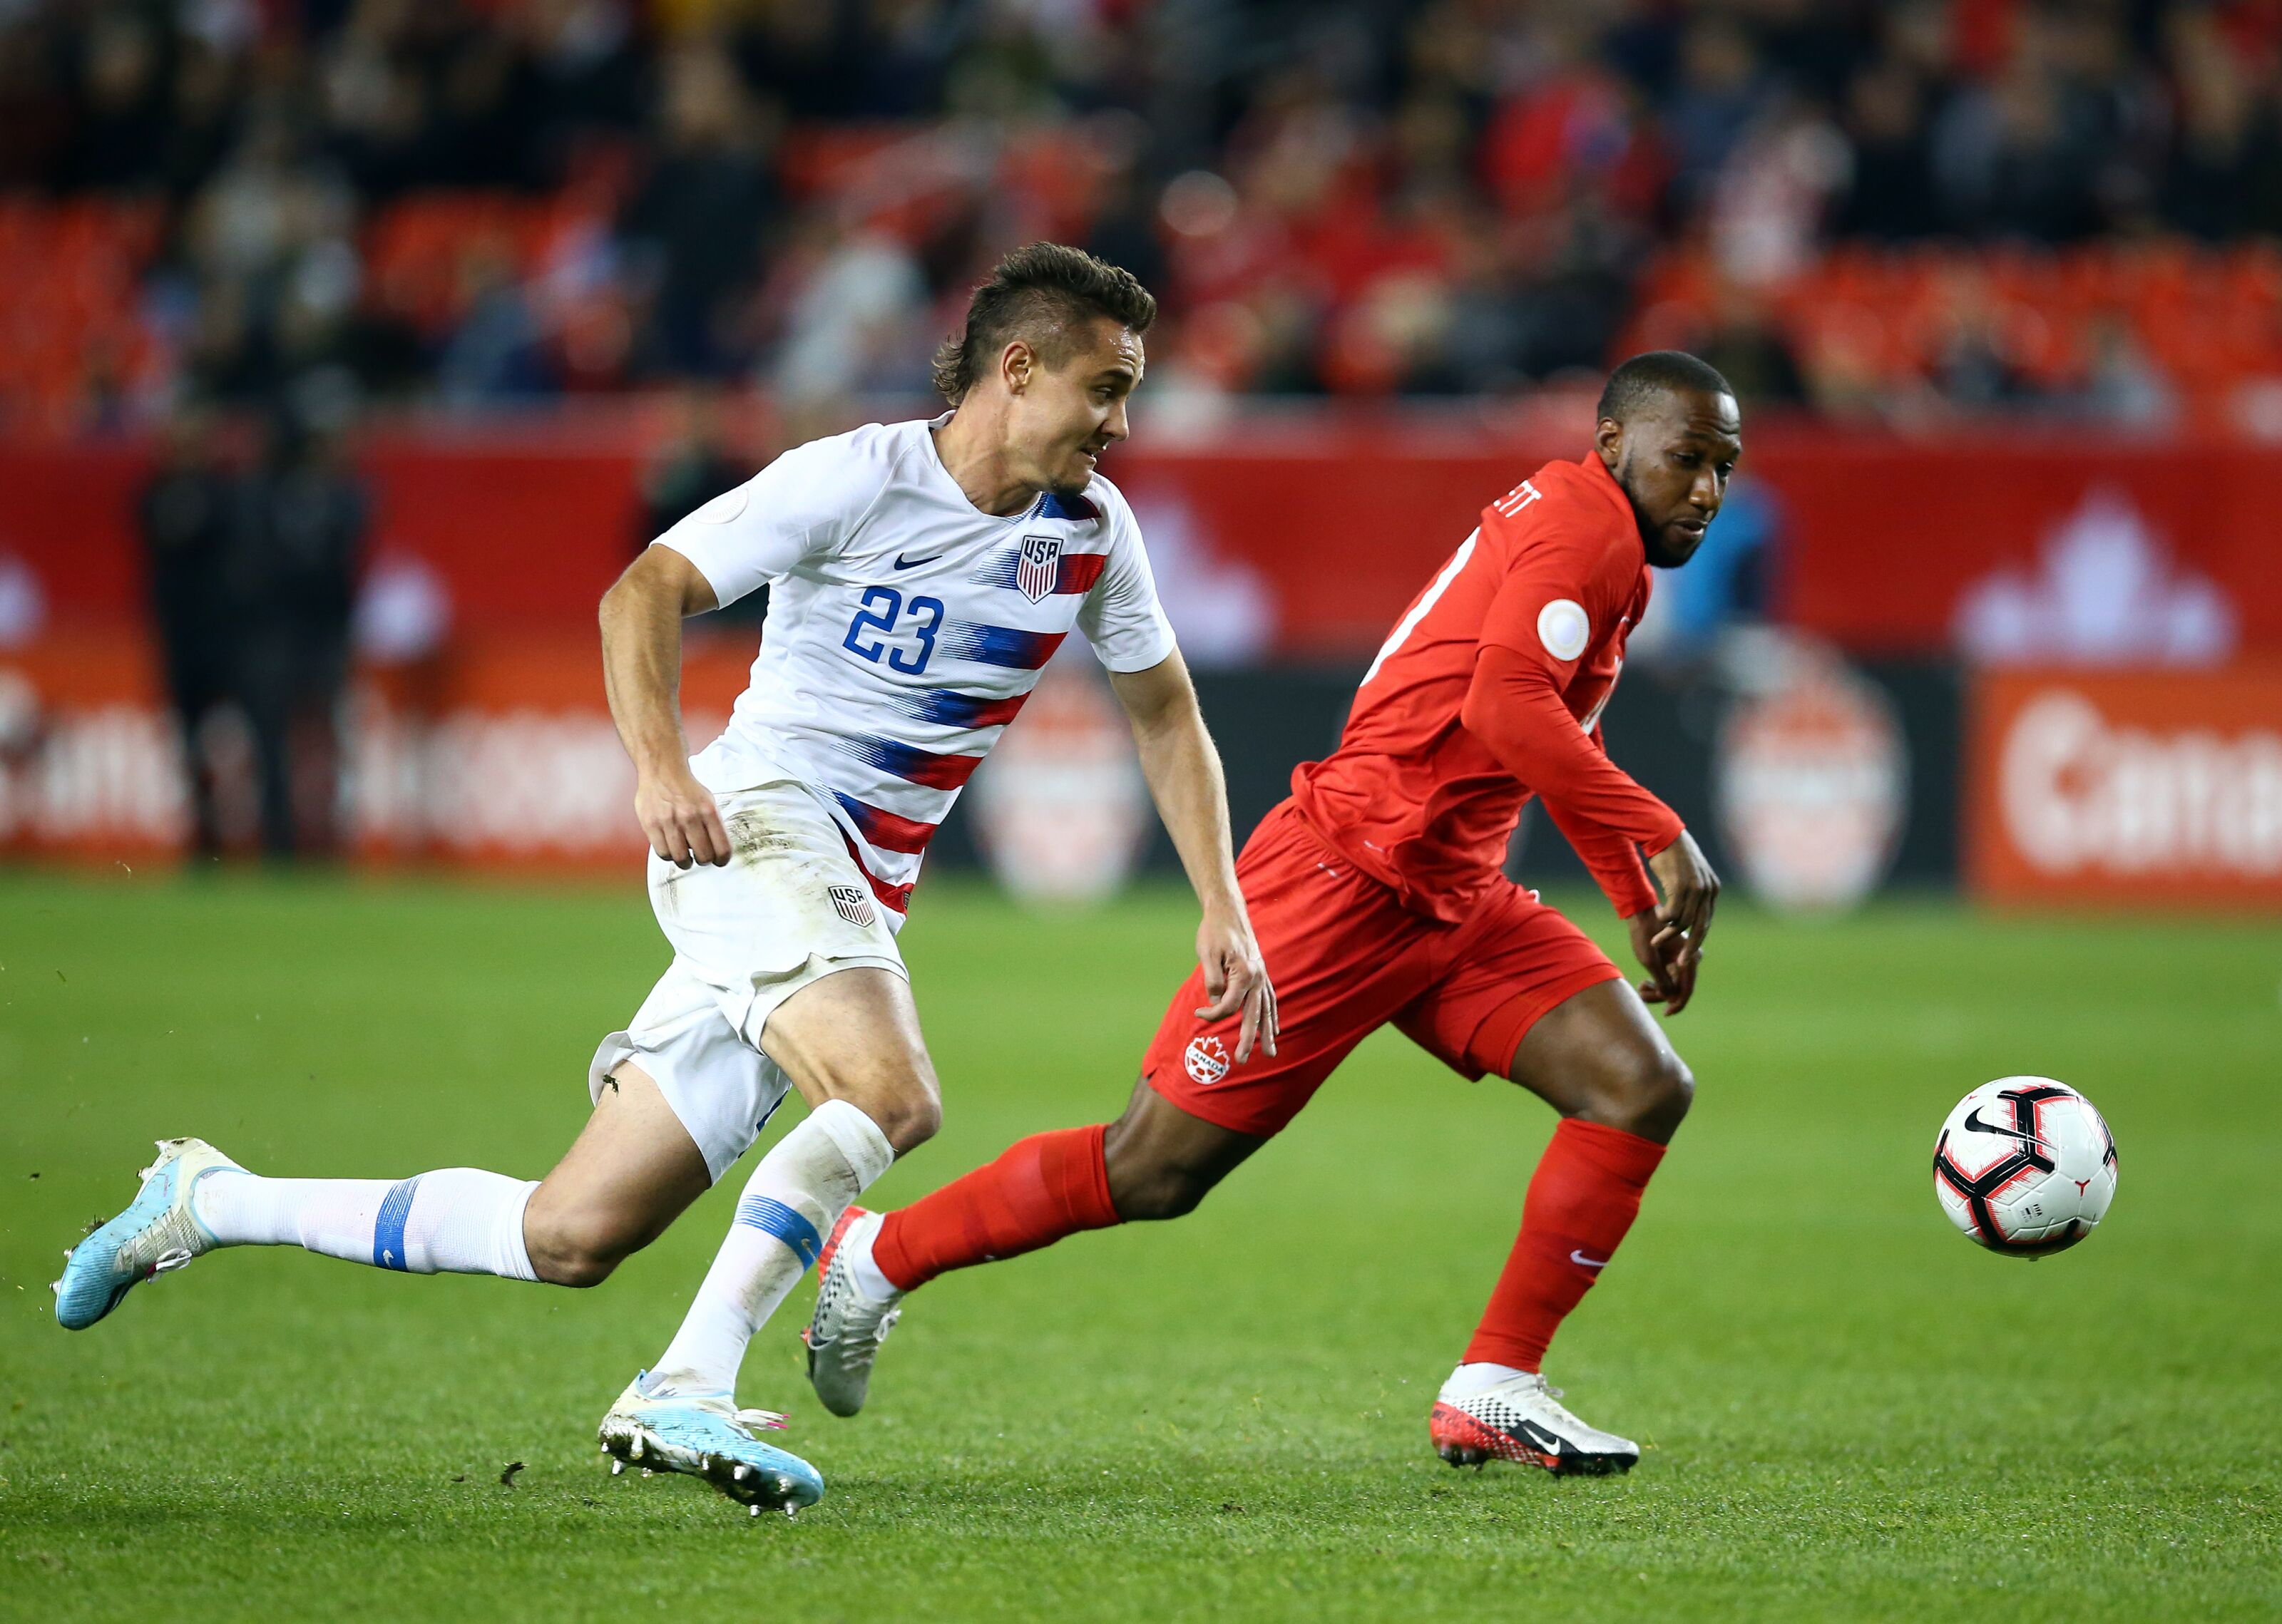 Southampton: Saints have been offered chance to sign American